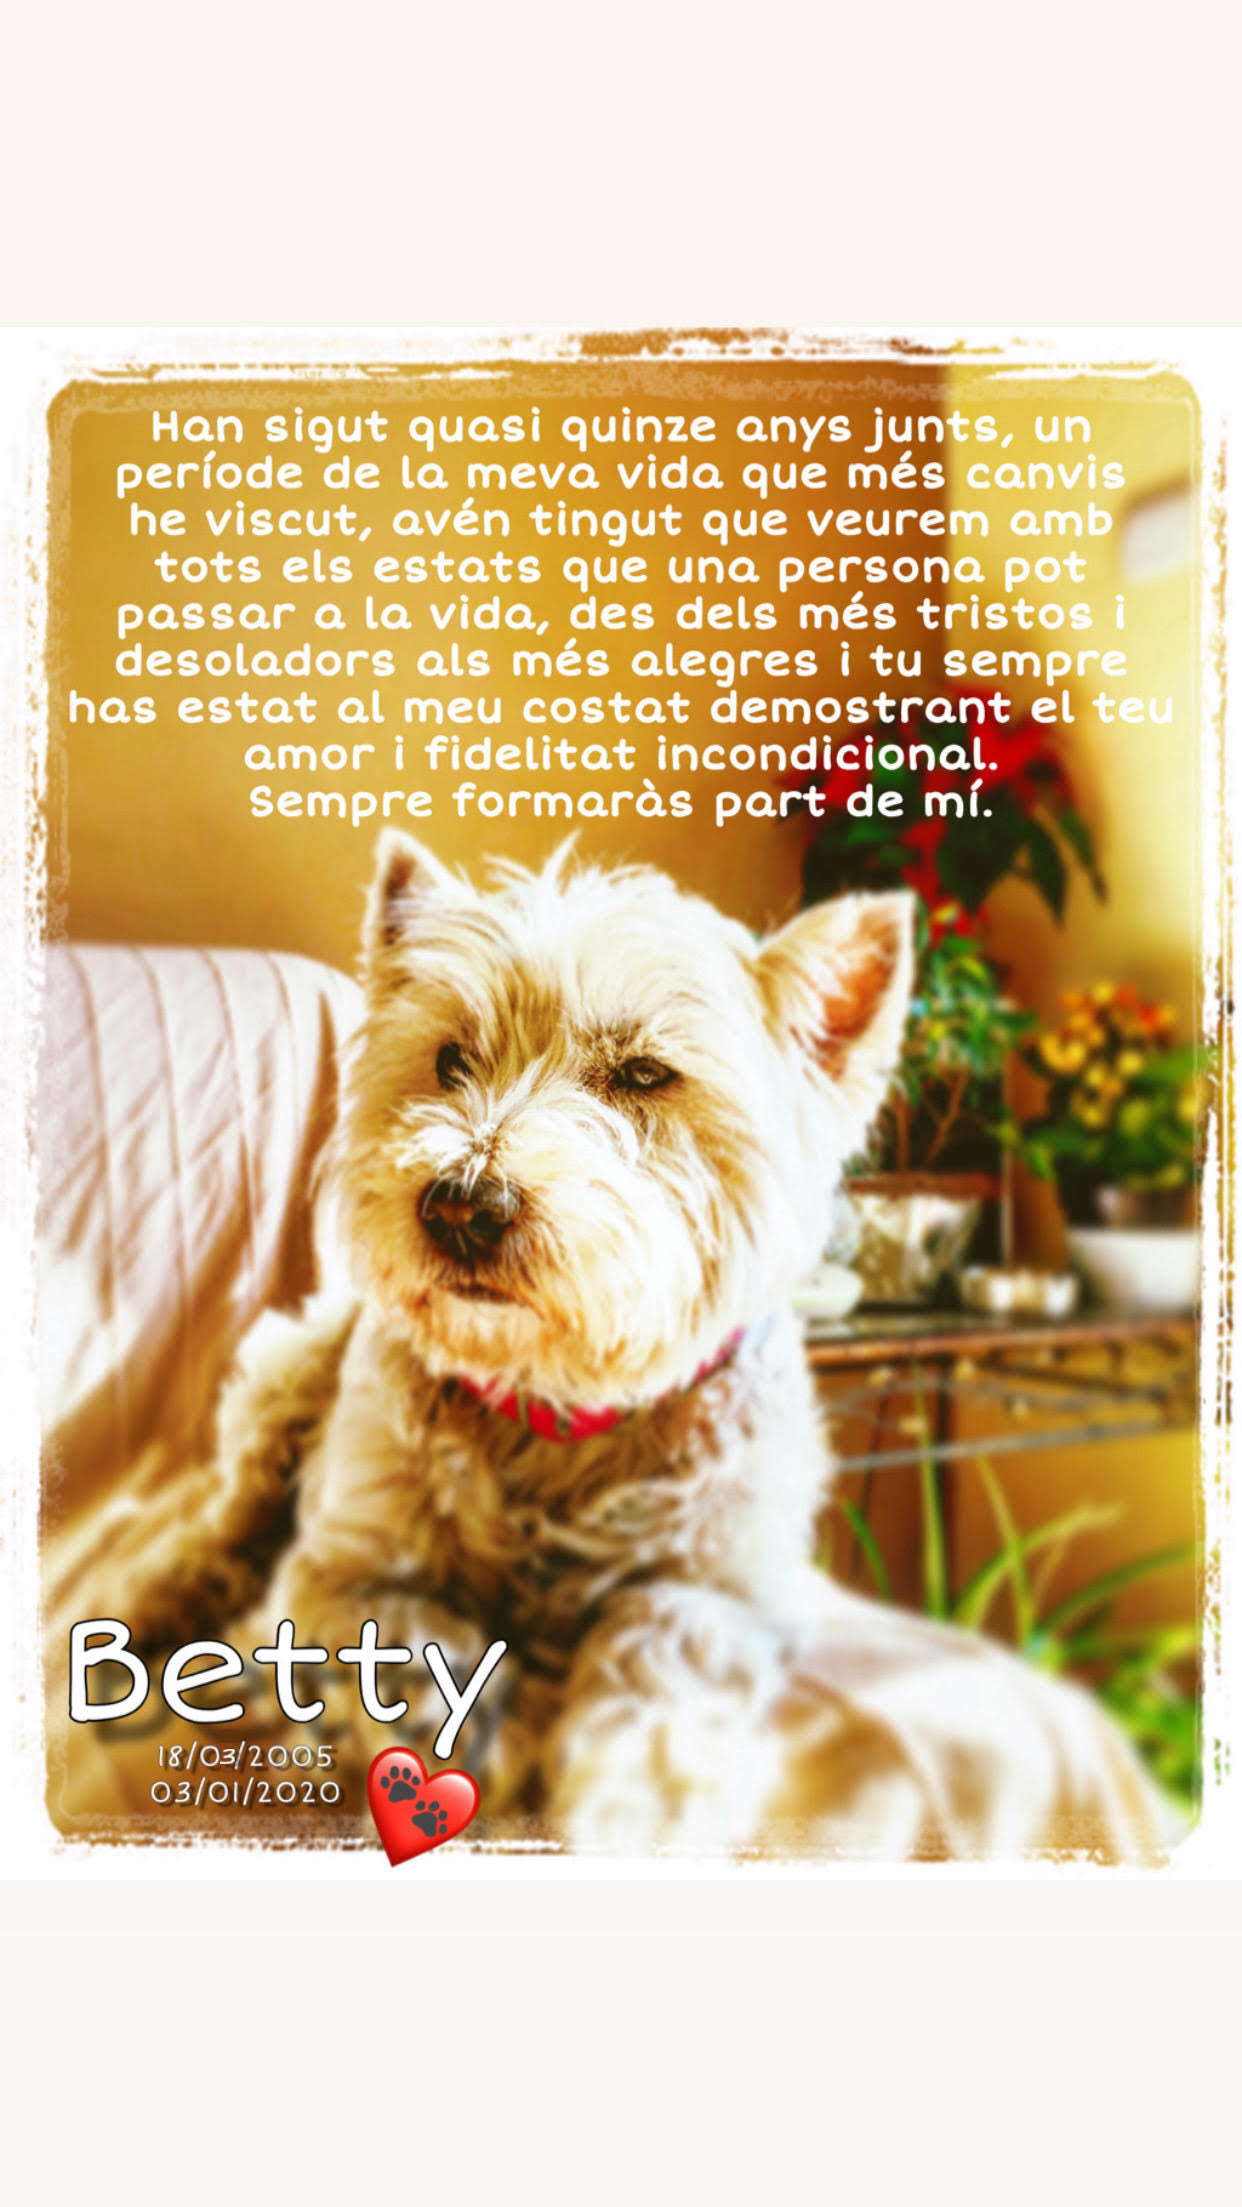 Homenatje Betty